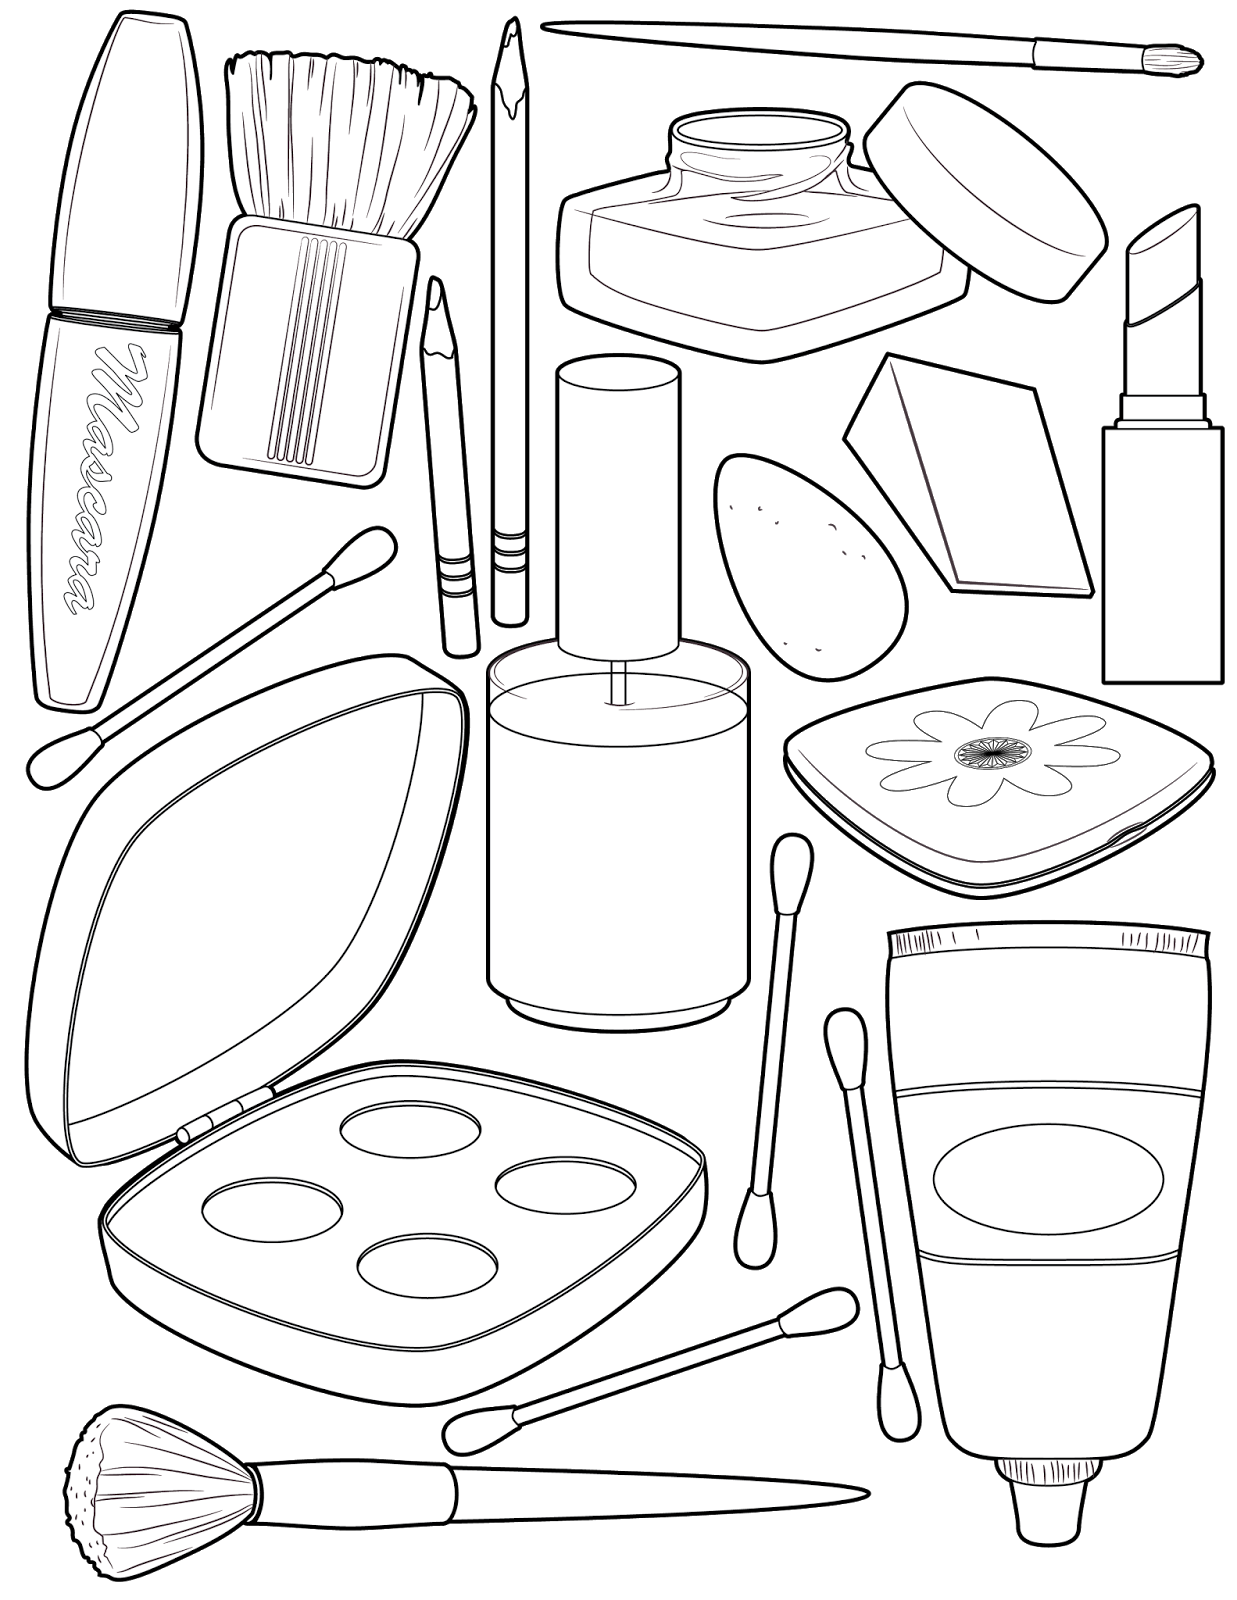 make up colouring pages makeup coloring pages coloring pages to download and print pages up colouring make